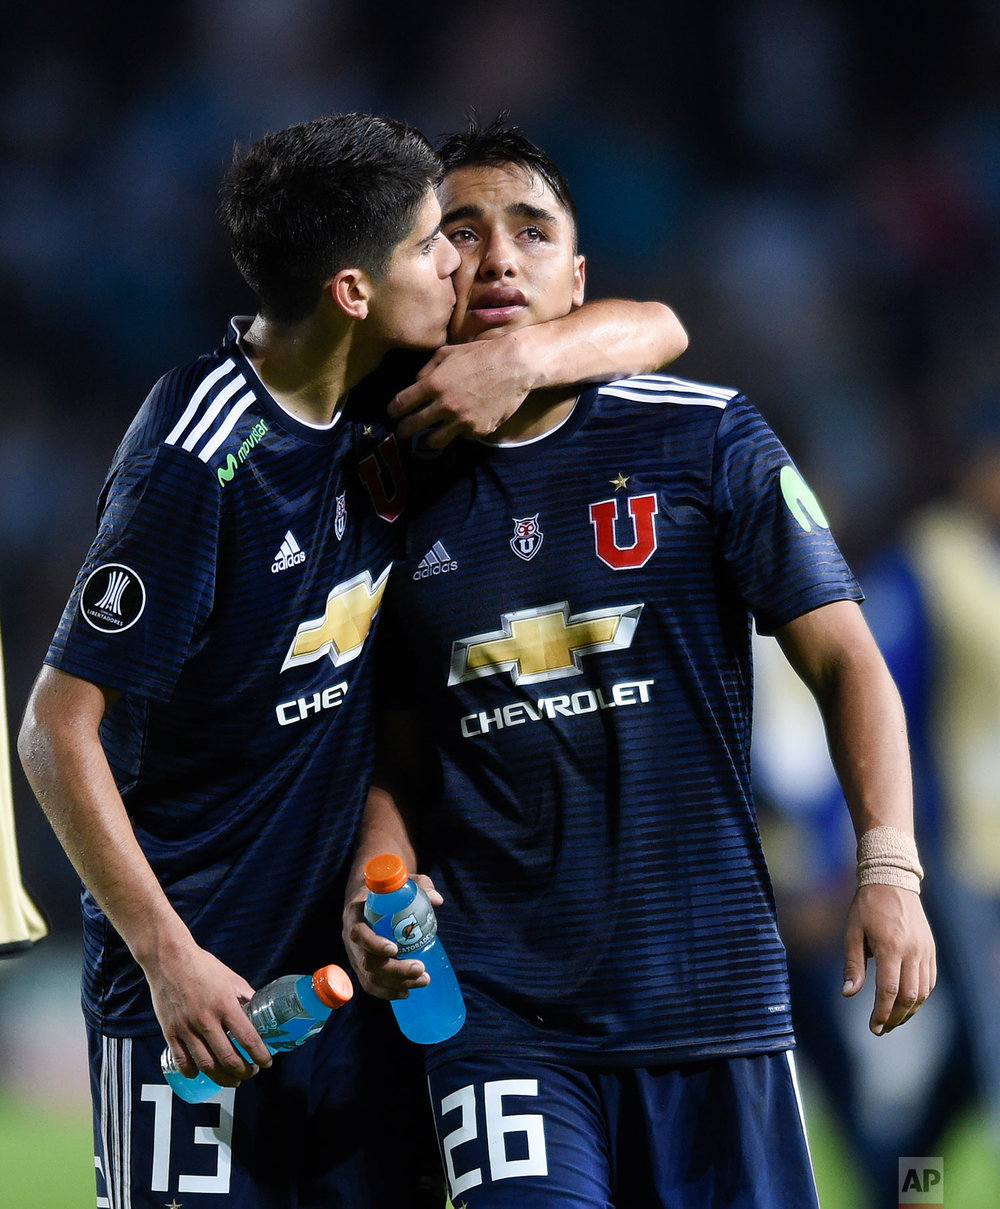 Nicolas Guerra Ruz gets a kiss from teammate Angelo Araos, of Universidad de Chile, after they lost 0-1 to Racing Club a Copa Libertadores soccer match in Buenos Aires, Argentina, Thursday, May 3, 2018.(AP Photo/Gustavo Garello)